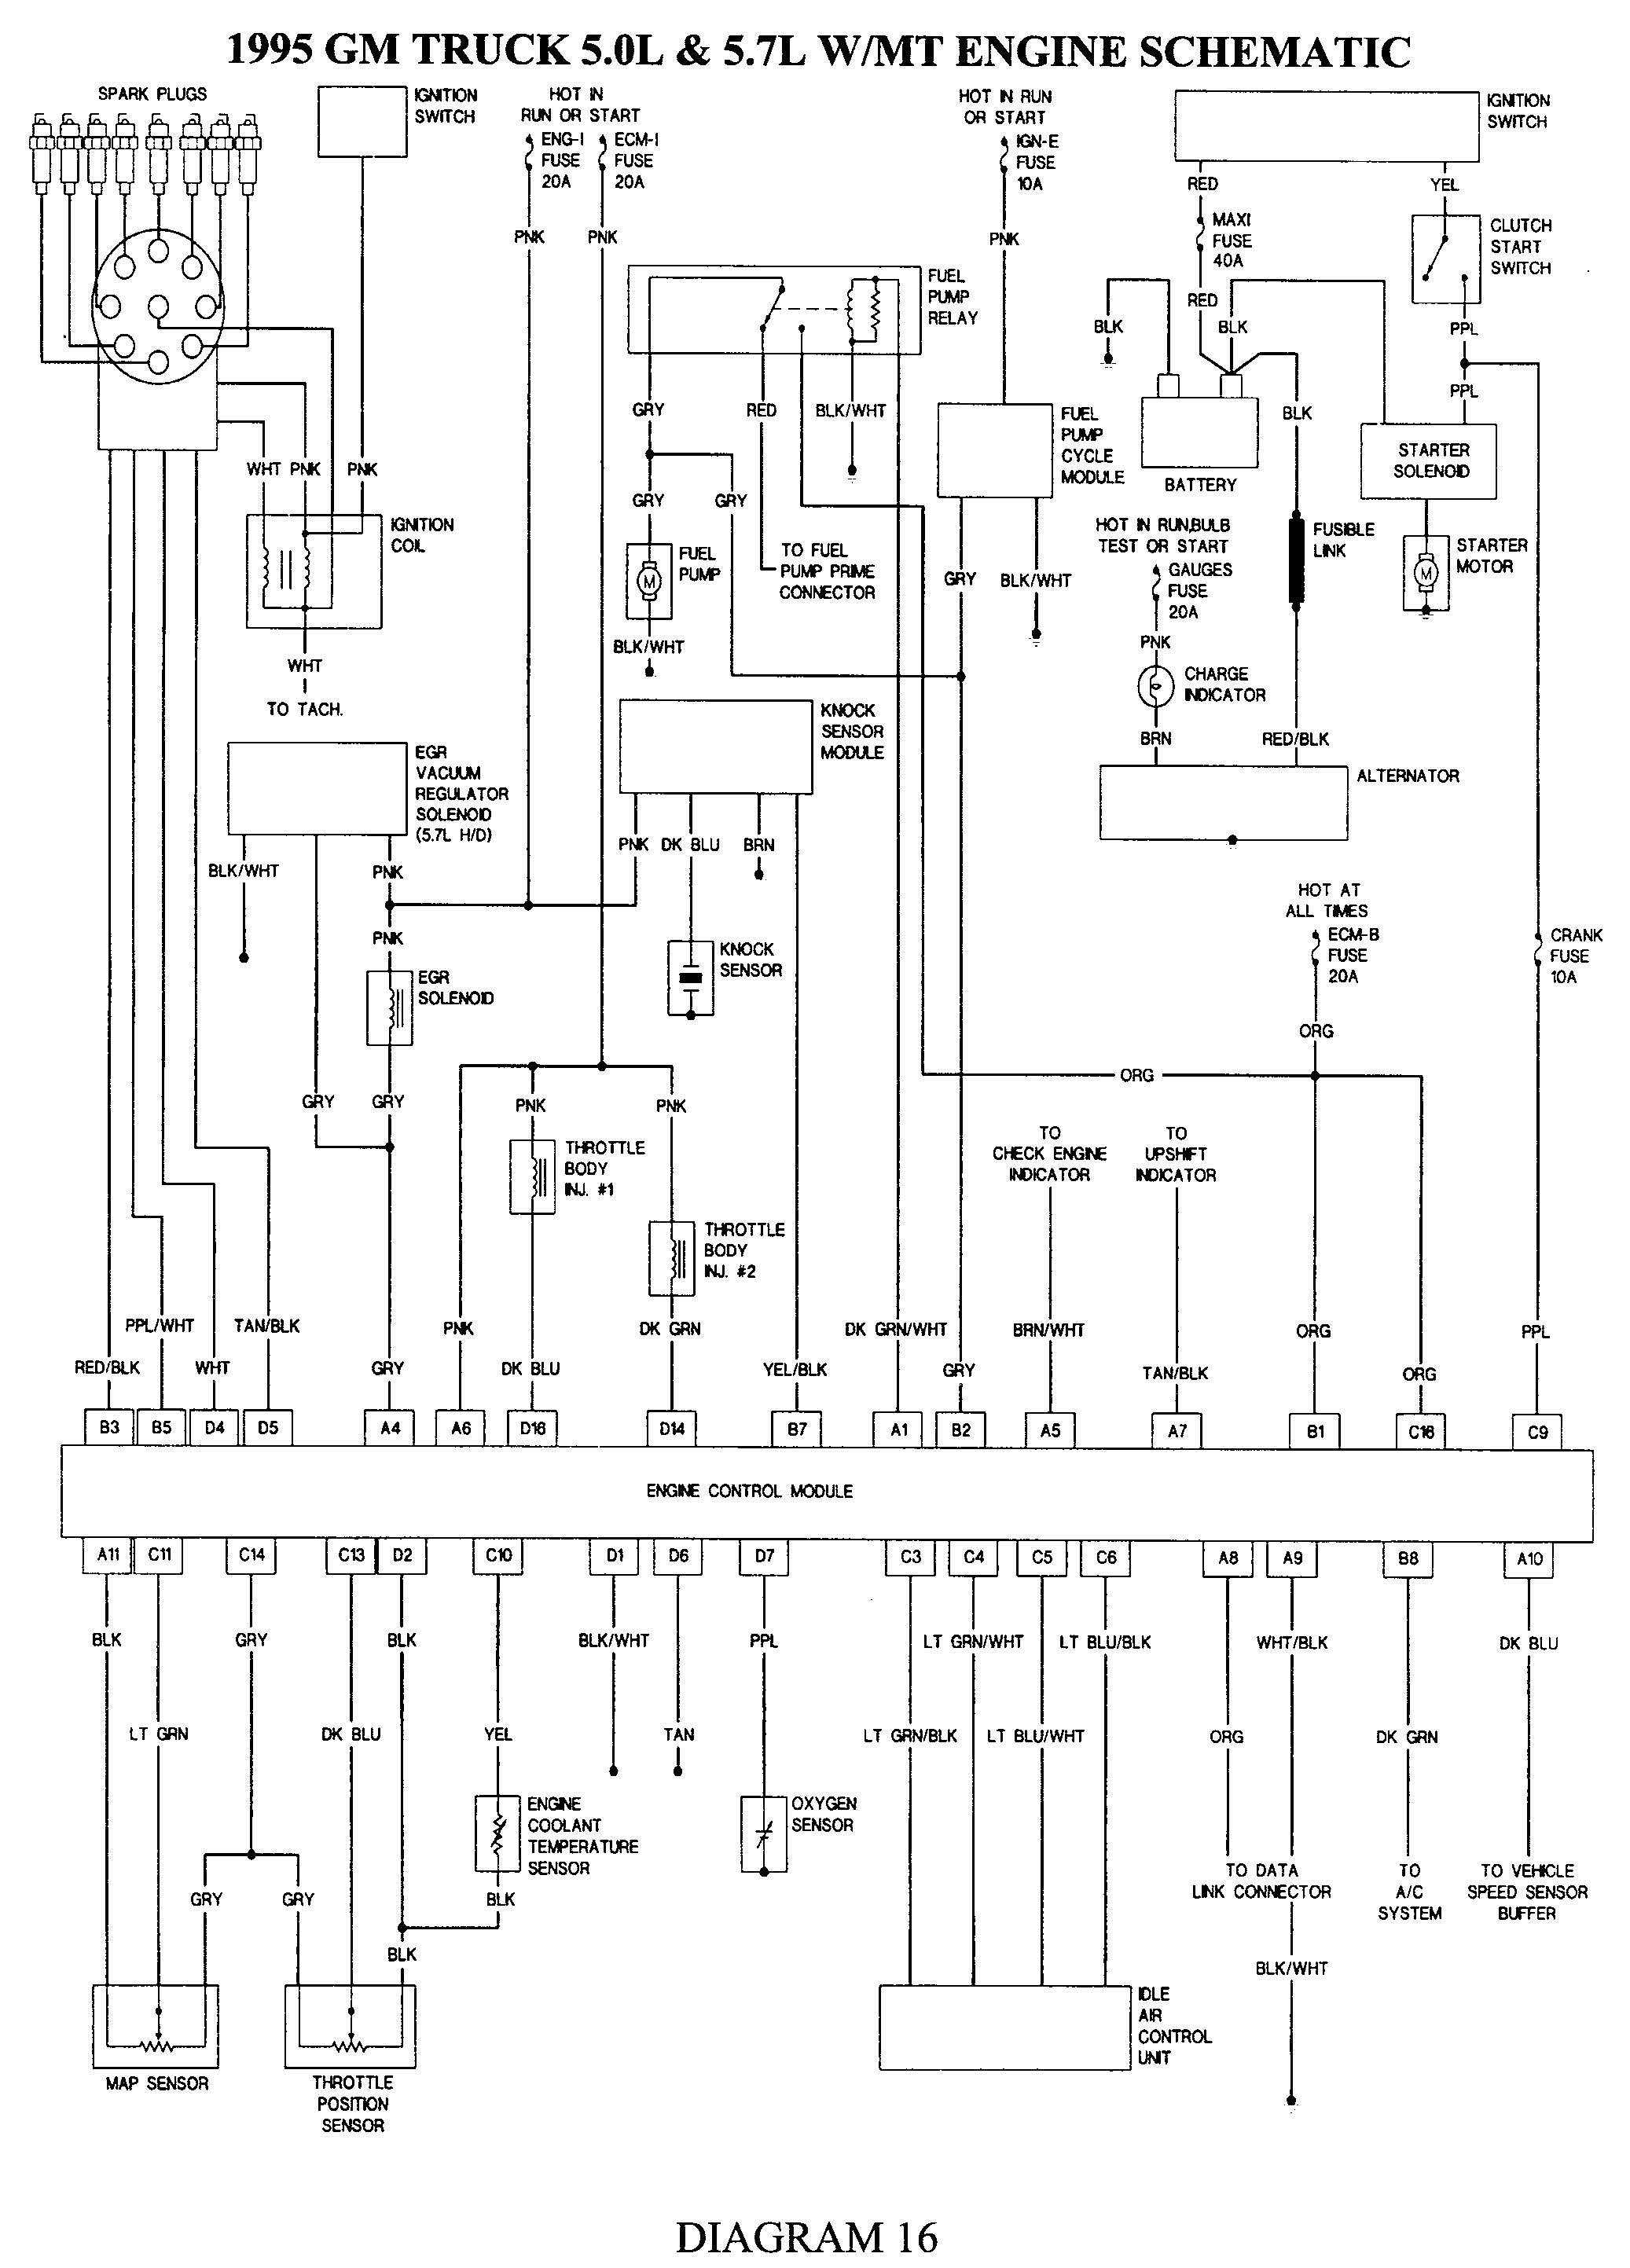 1995 gmc wiring harness download wiring diagrams u2022 rh wiringdiagramblog today 1951 Chevy Truck Wiring Harness Diagram 1995 Chevy Truck Wiring Harness